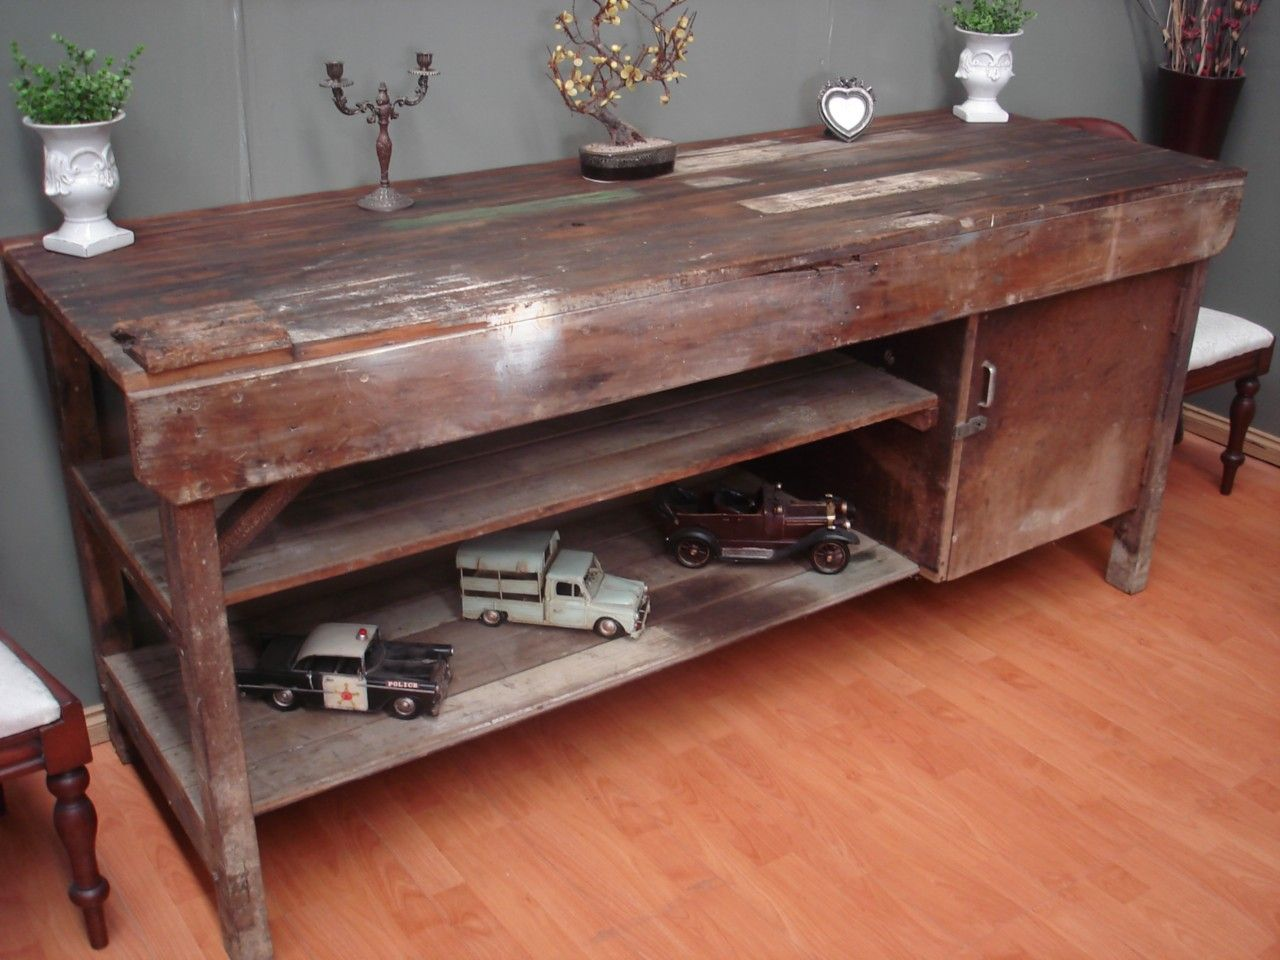 Antique Industrial Rustic Kitchen Island Work Bench Hall Table Sideboard Finishings Rustic